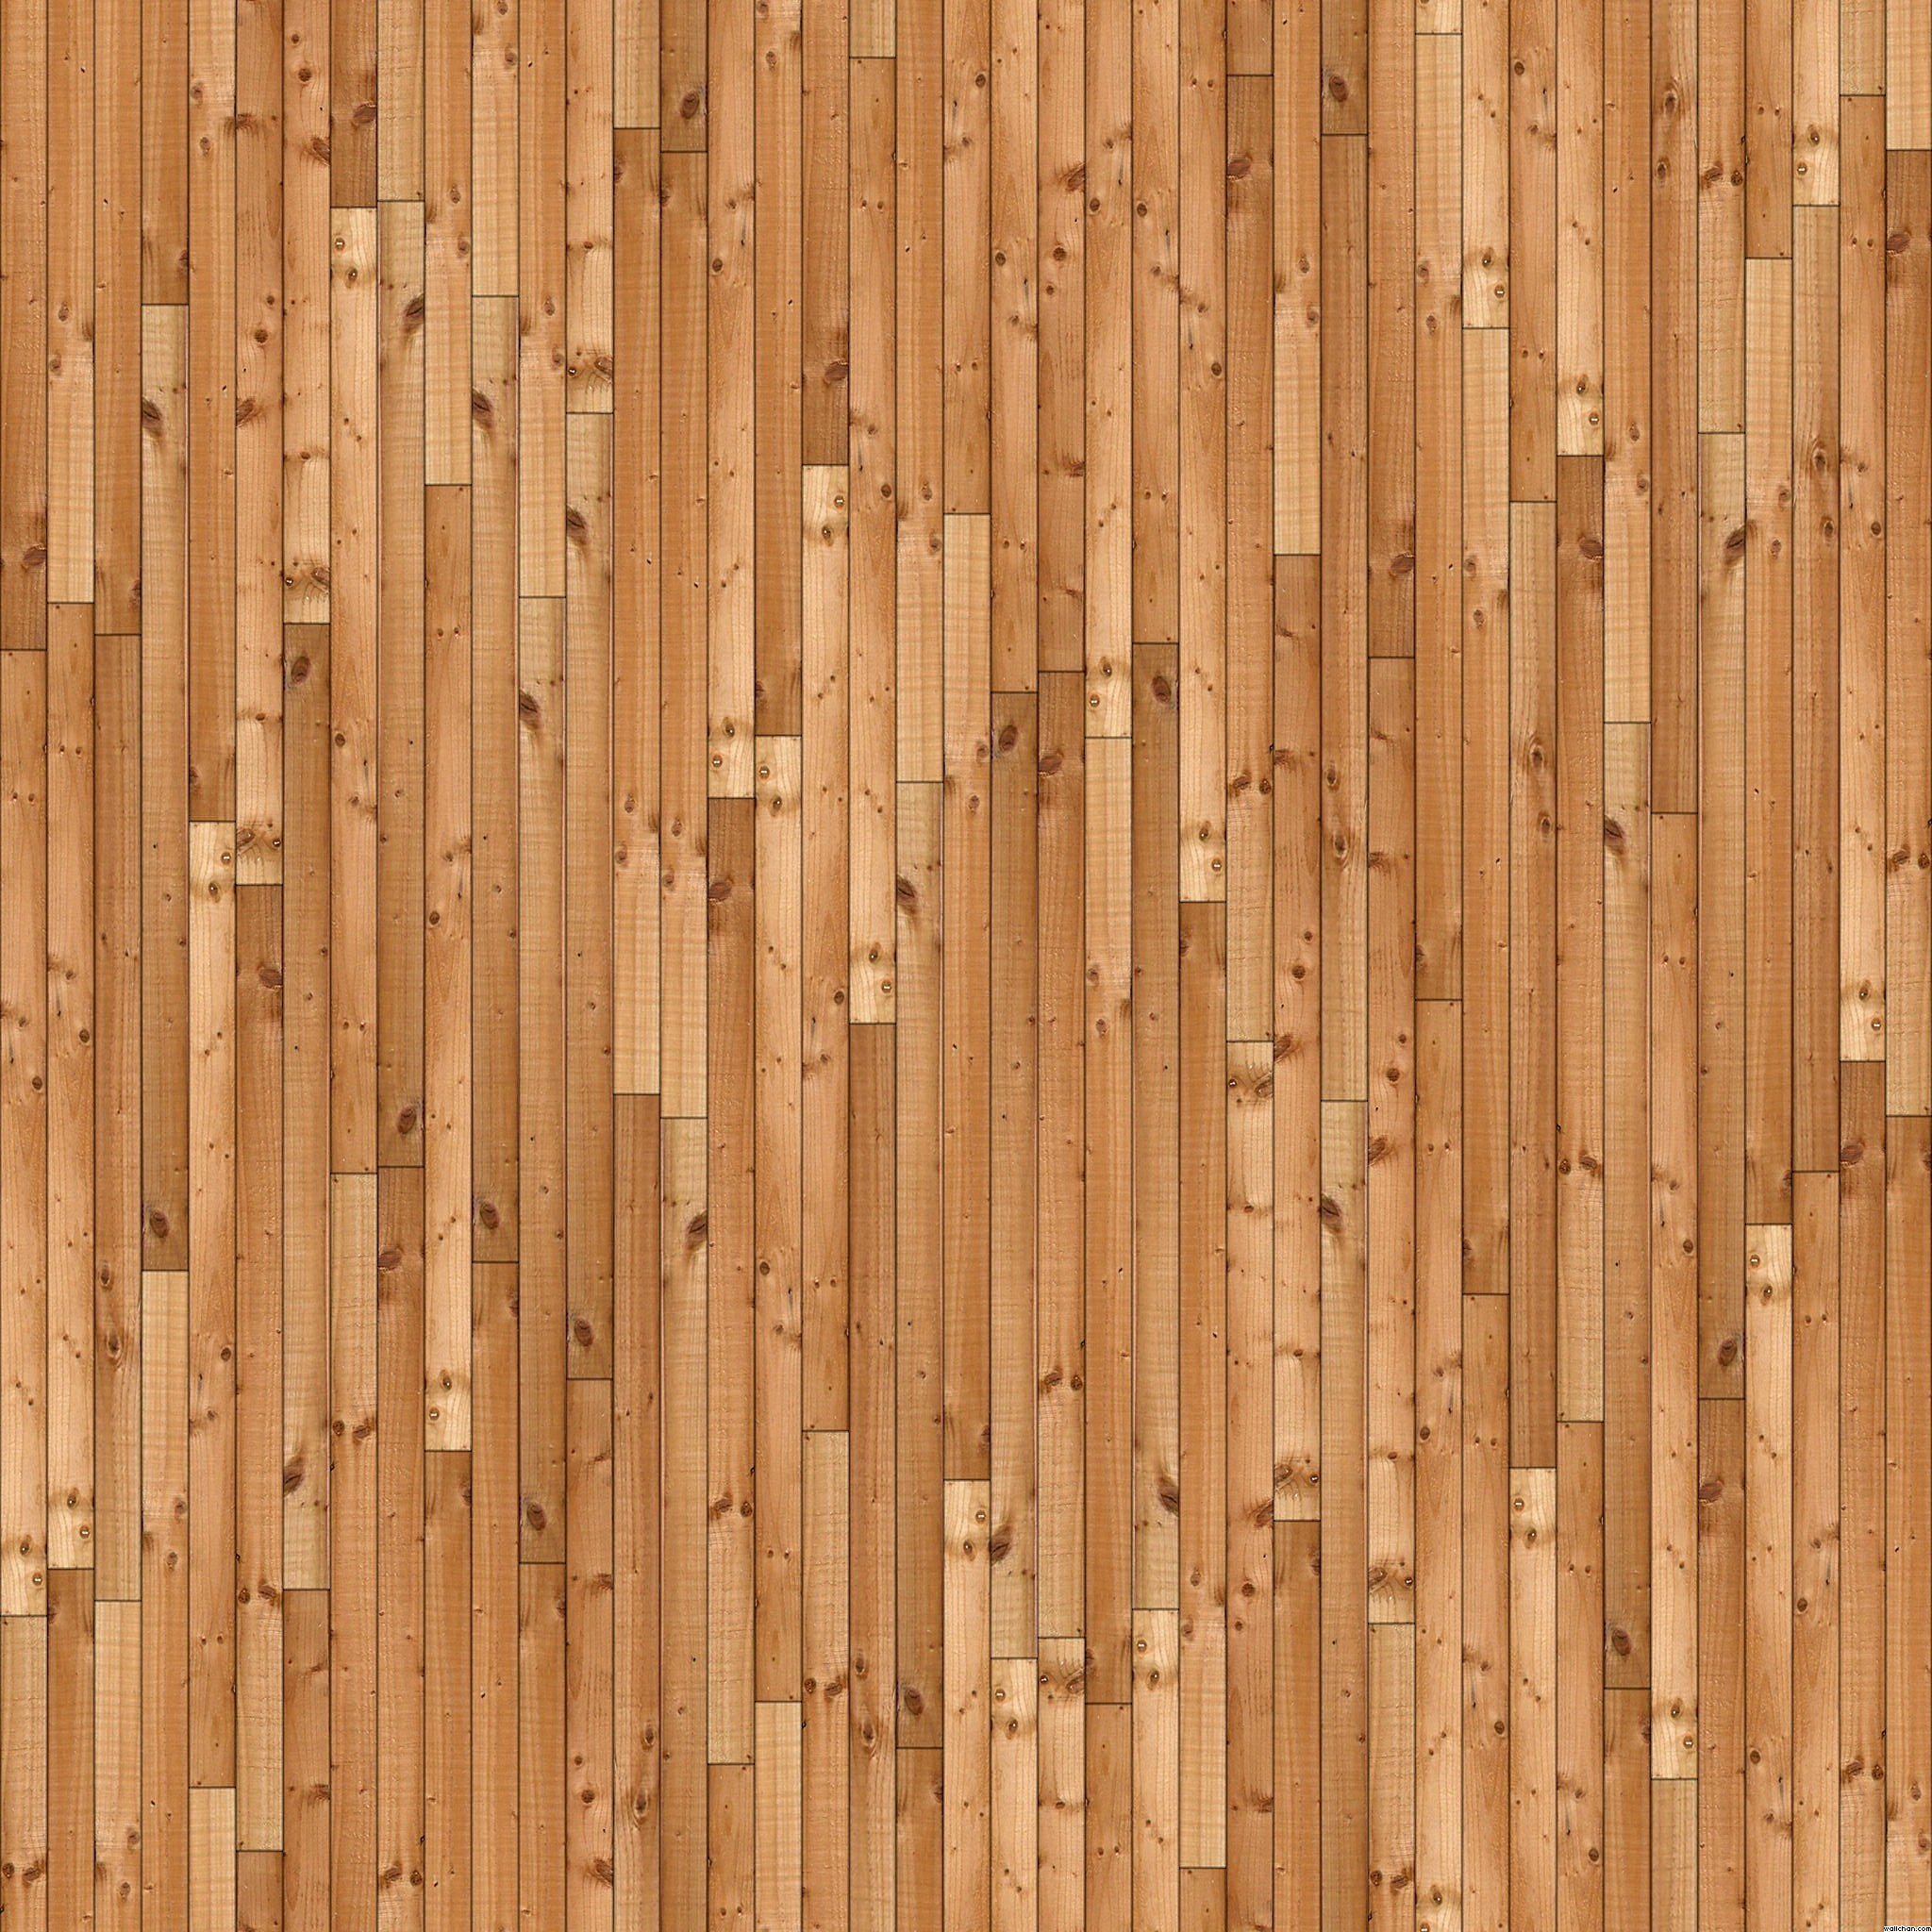 wood floor texture another picture and gallery about paint color for houses colorful russian mosques paint color earl gray by home painti